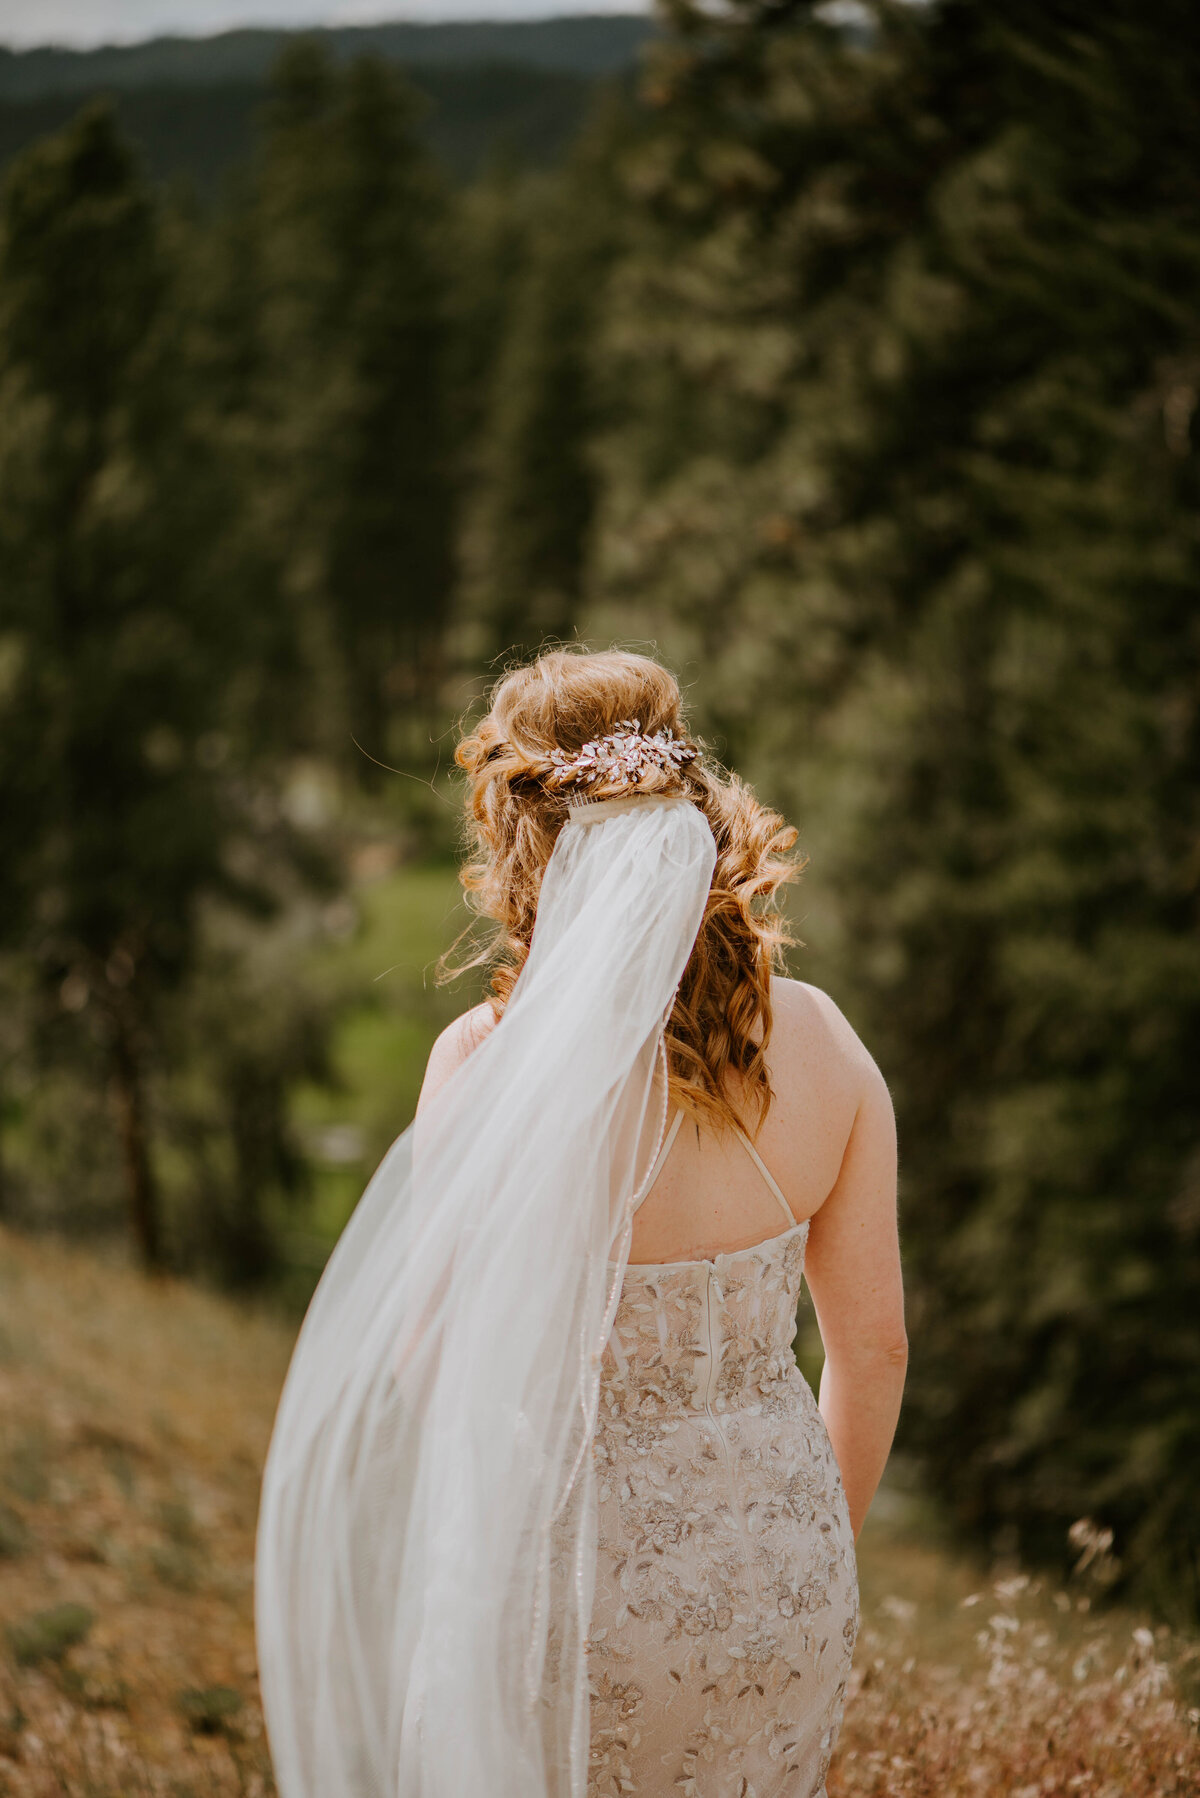 ochoco-forest-central-oregon-elopement-pnw-woods-wedding-covid-bend-photographer-inspiration2021